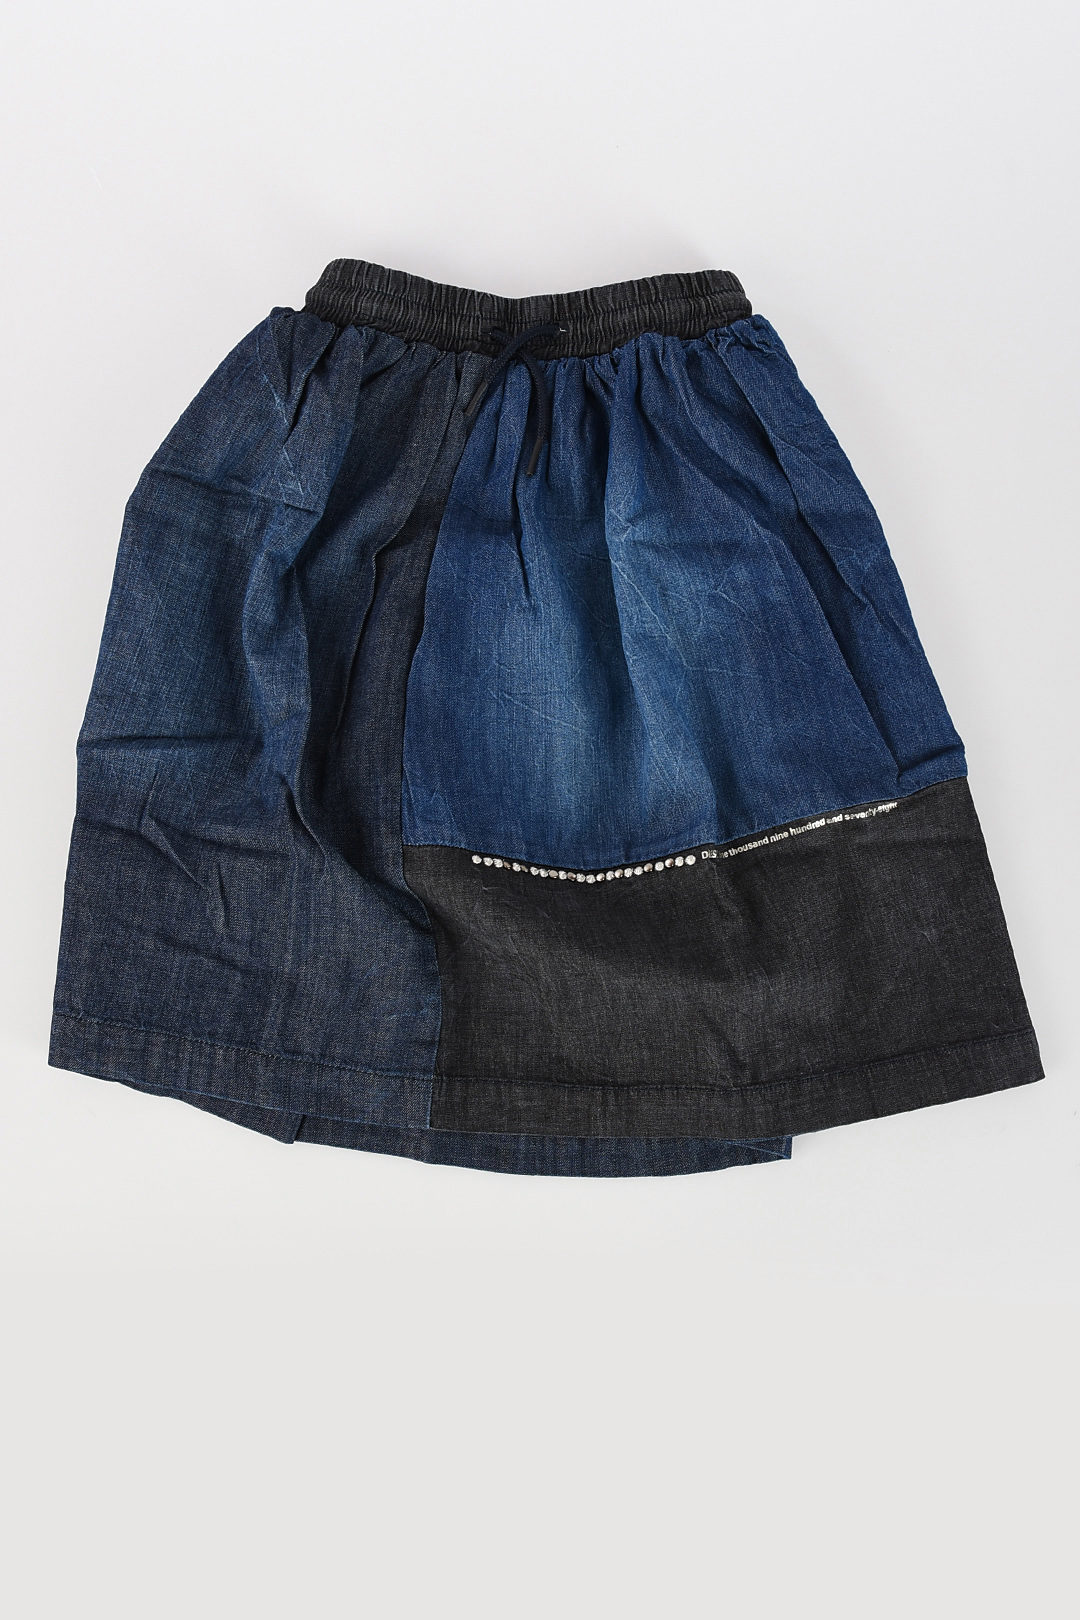 a925c4f73 Diesel Kids Denim Skirt girls - Glamood Outlet